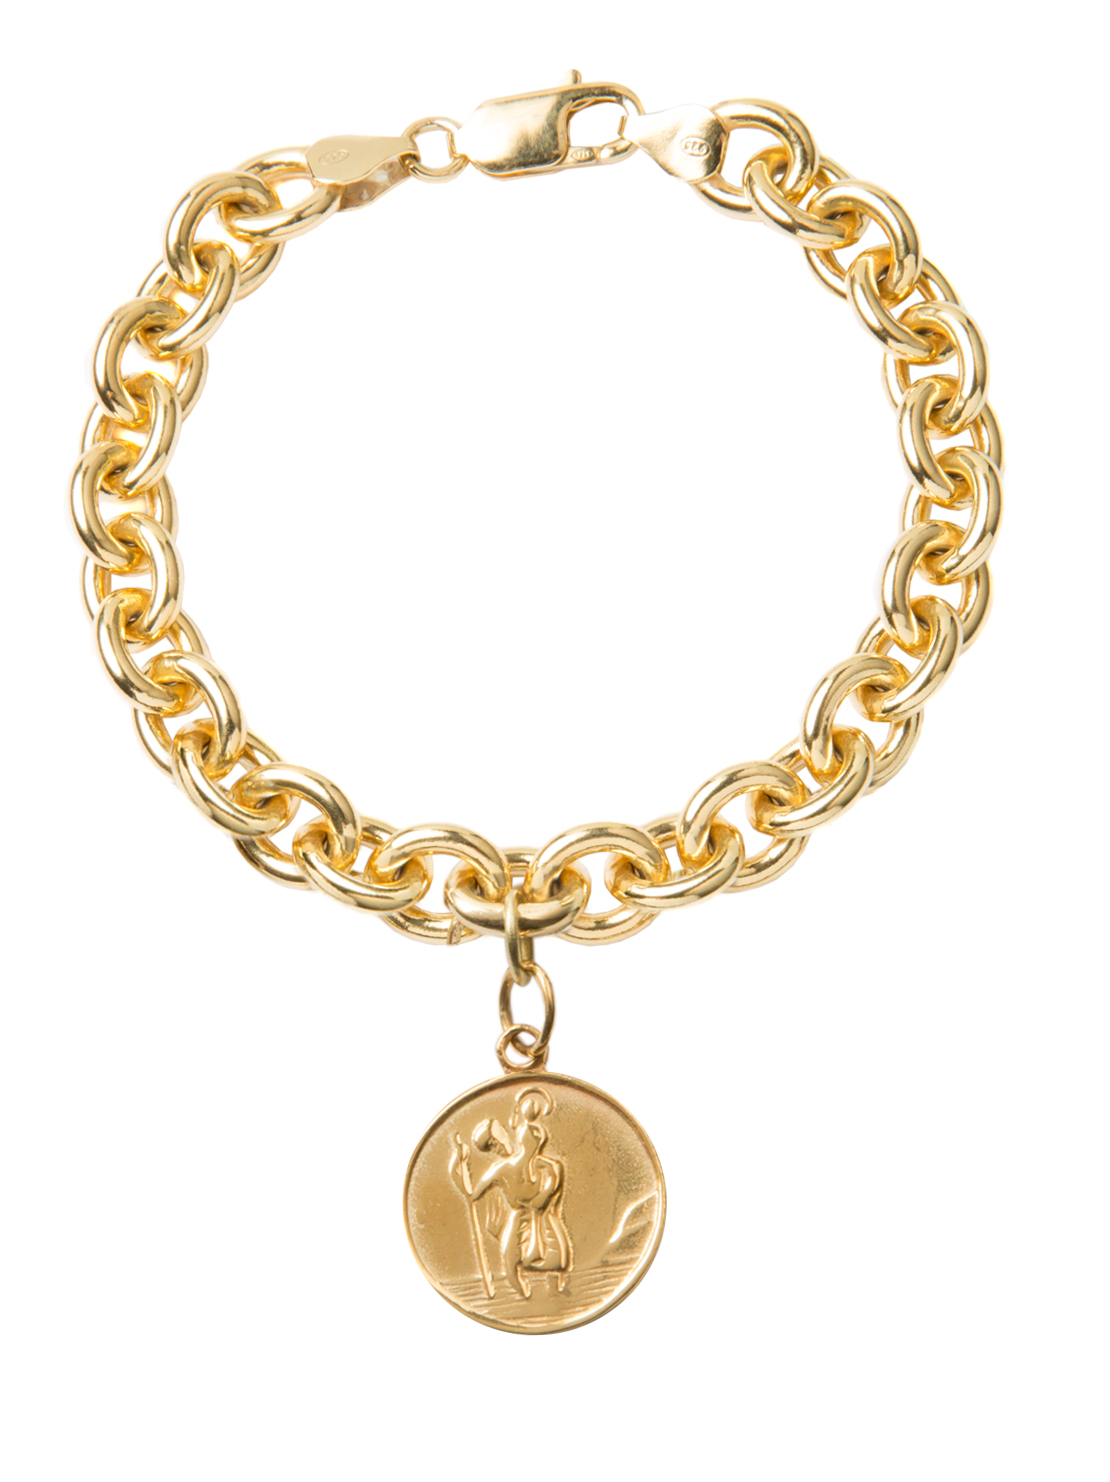 Gold St Christopher Bracelet